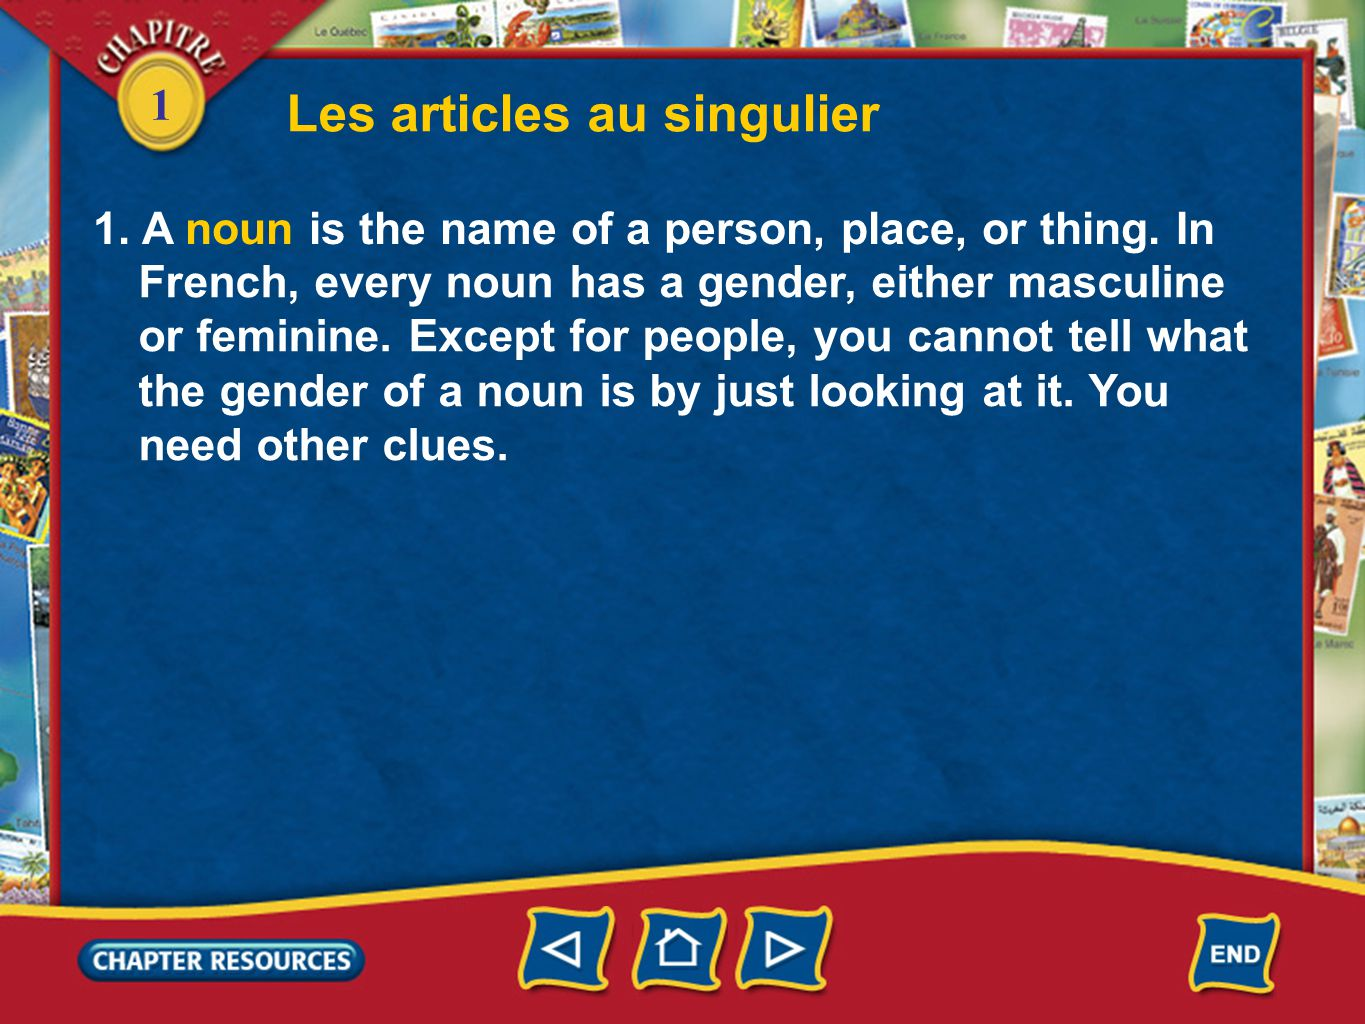 1 Les articles au singulier French, every noun has a gender, either masculine or feminine. Except for people, you cannot tell what the gender of a nou